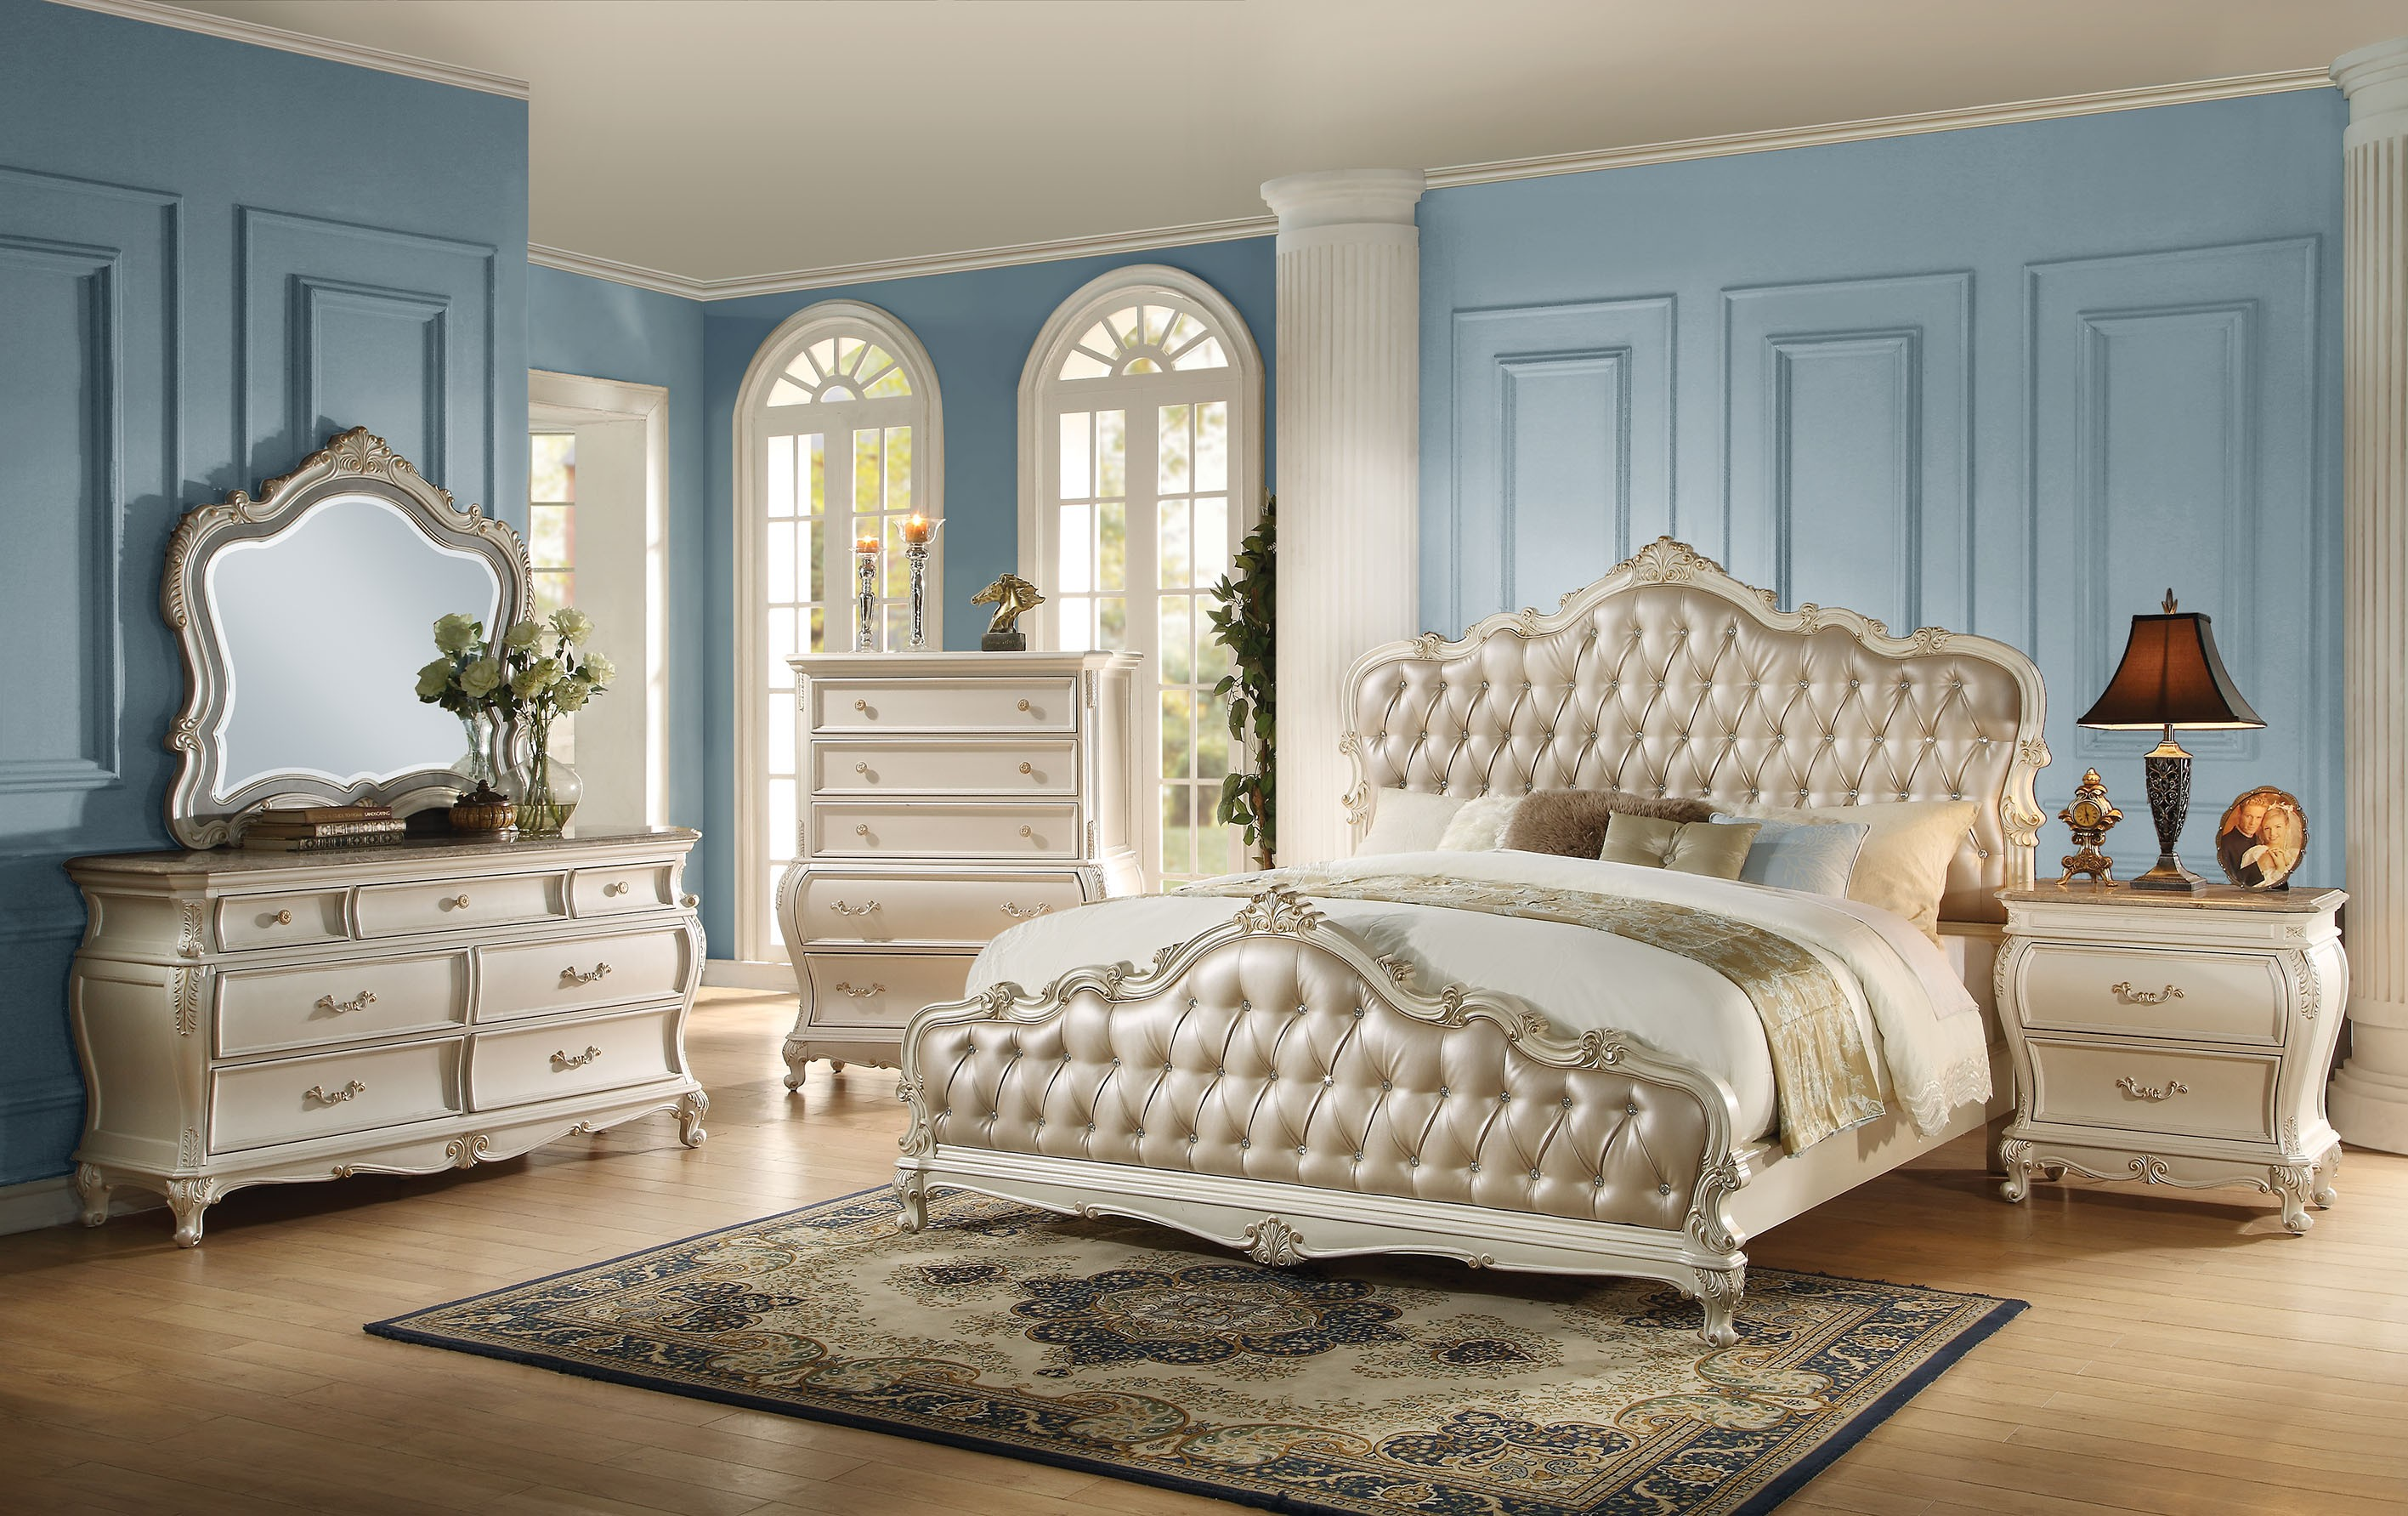 Chantelle 3-Piece King Size Bedroom Set, Pearl White Buy Online at ...